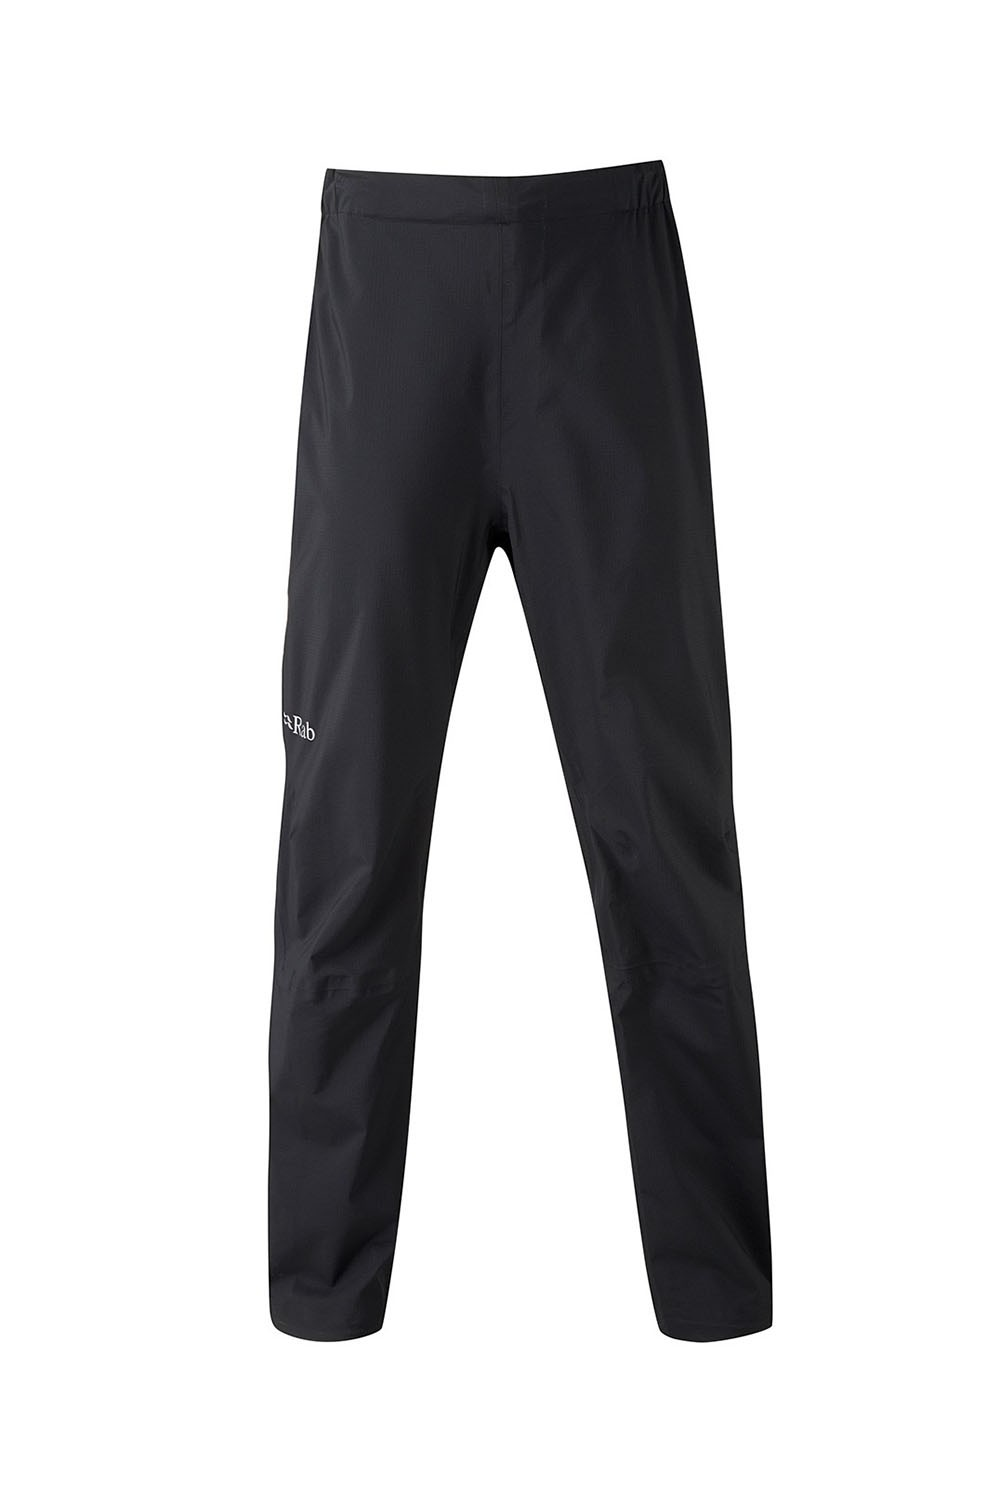 RAB - FIREWALL PANTS - MEN